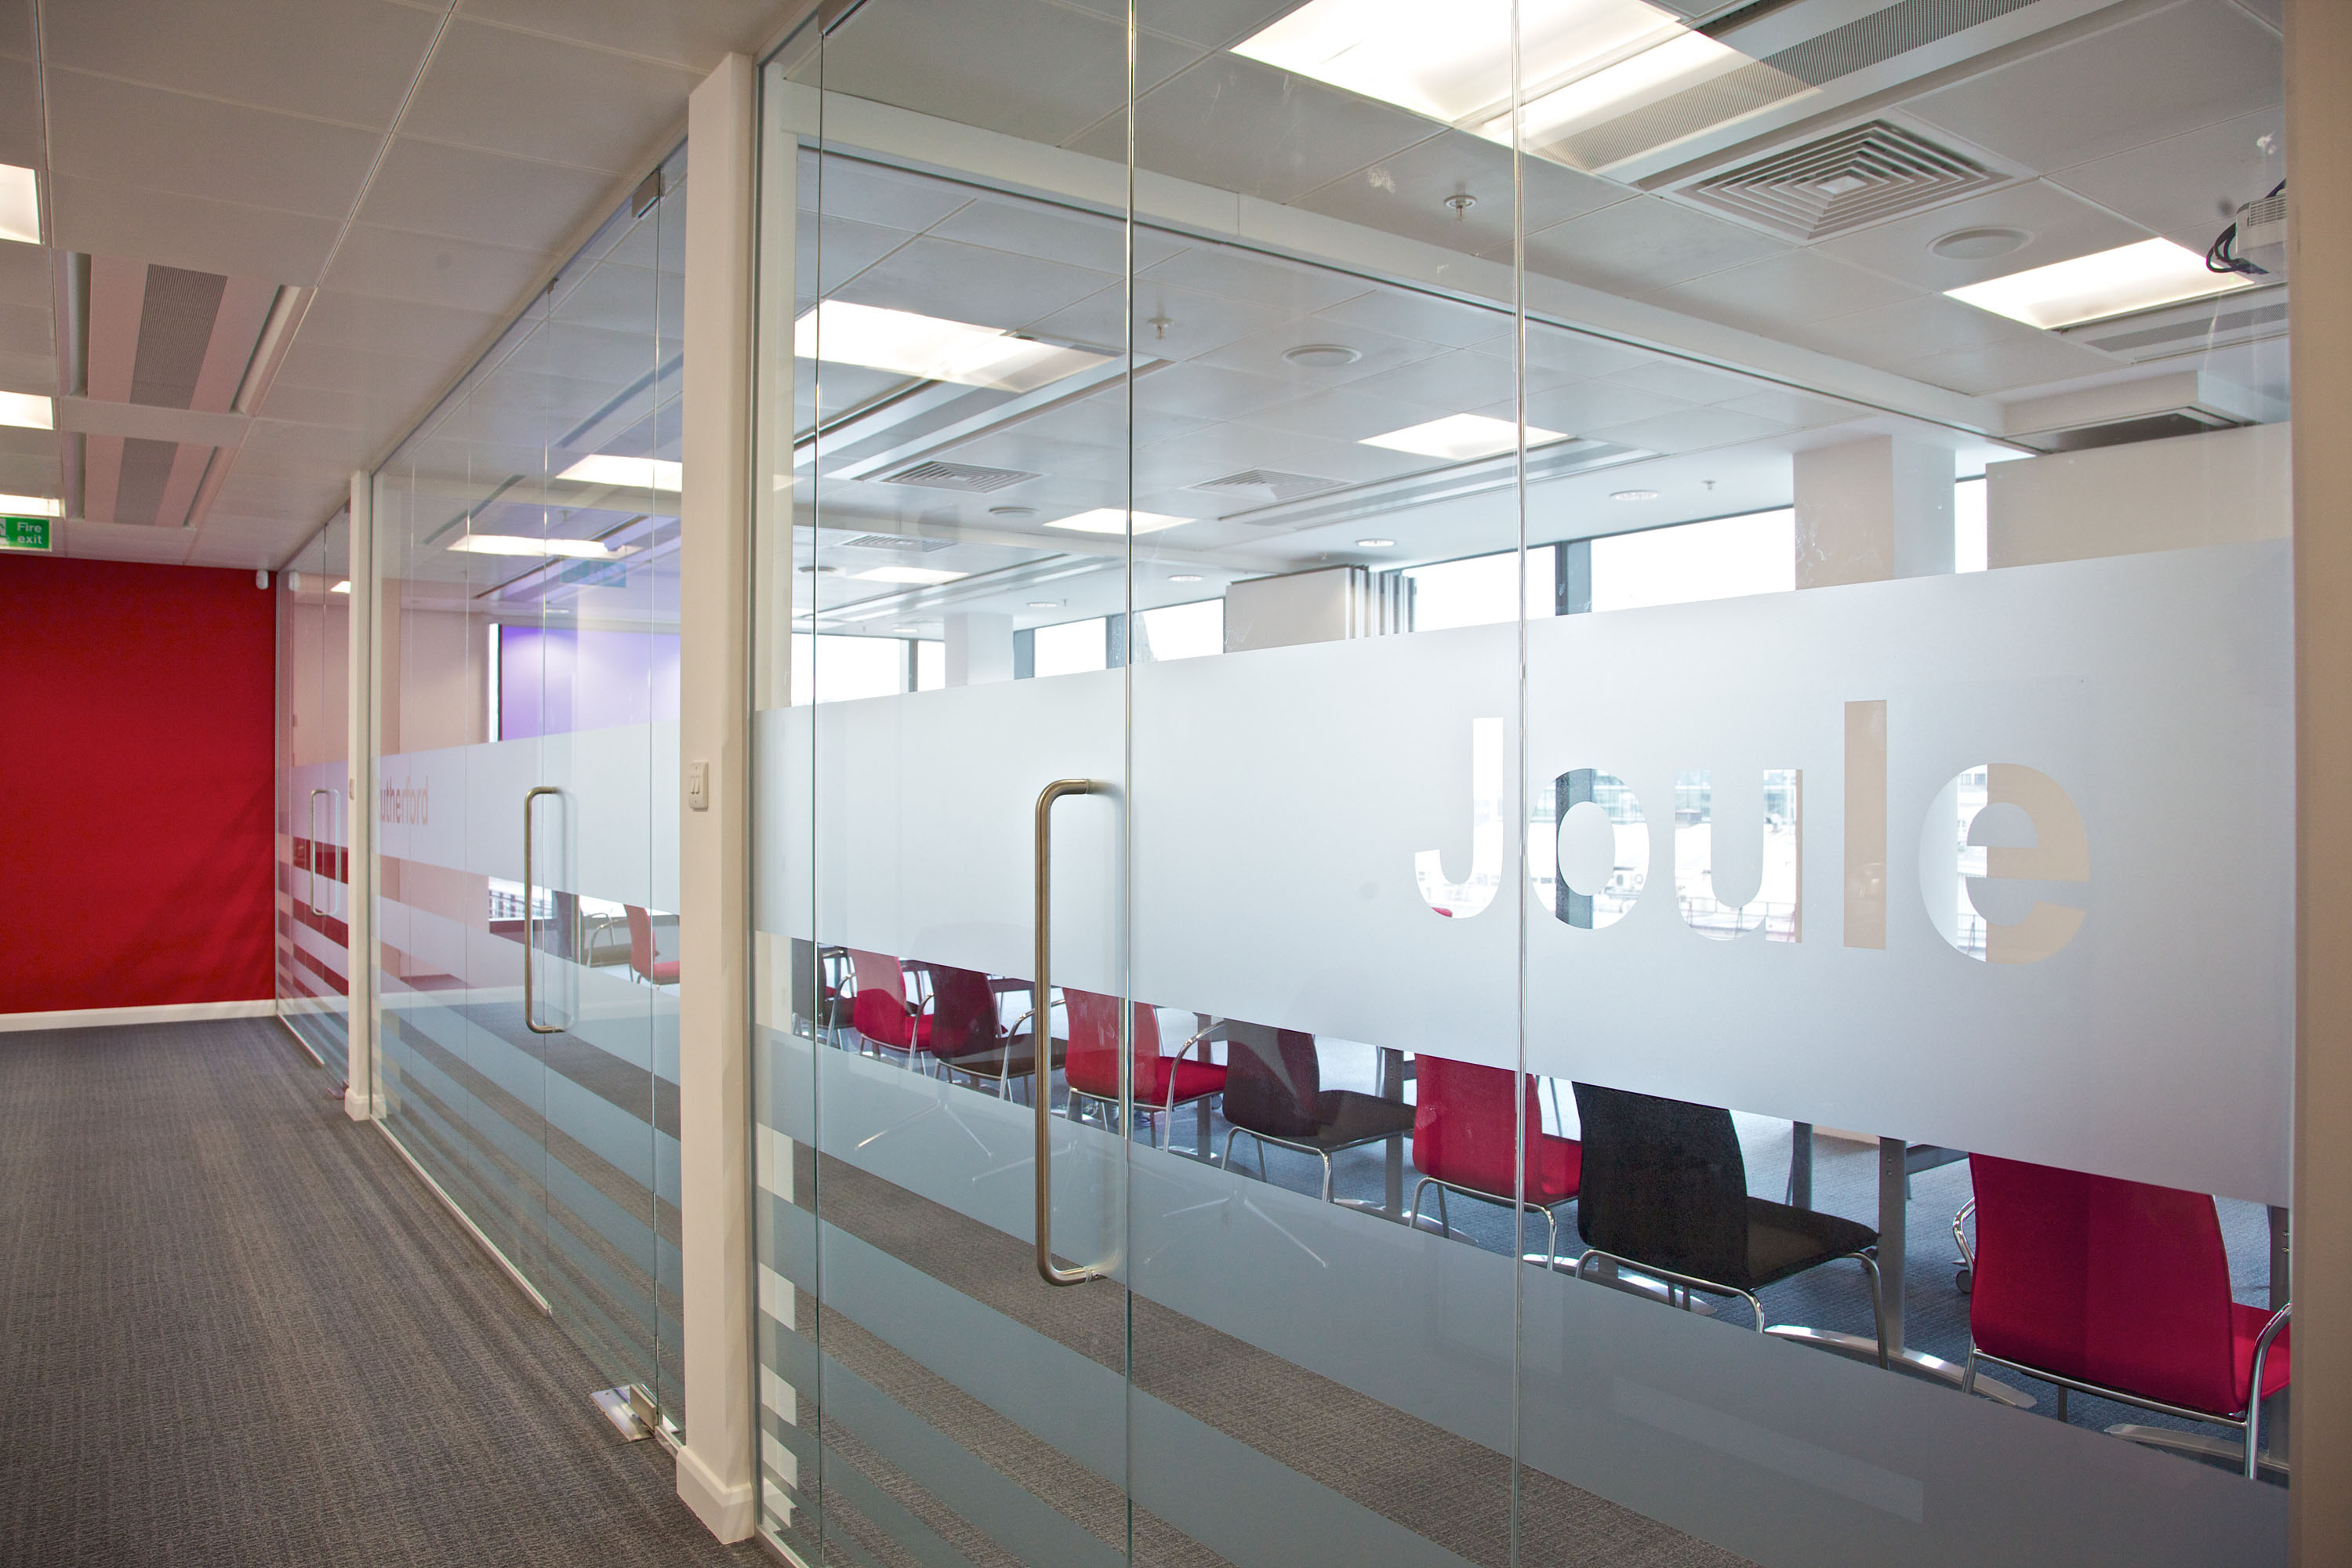 Glass Office Partitions | Big Box Office Interiors  Design Without Limits,  Creativity Guaranteed | Belfast | Ireland Office Interiors